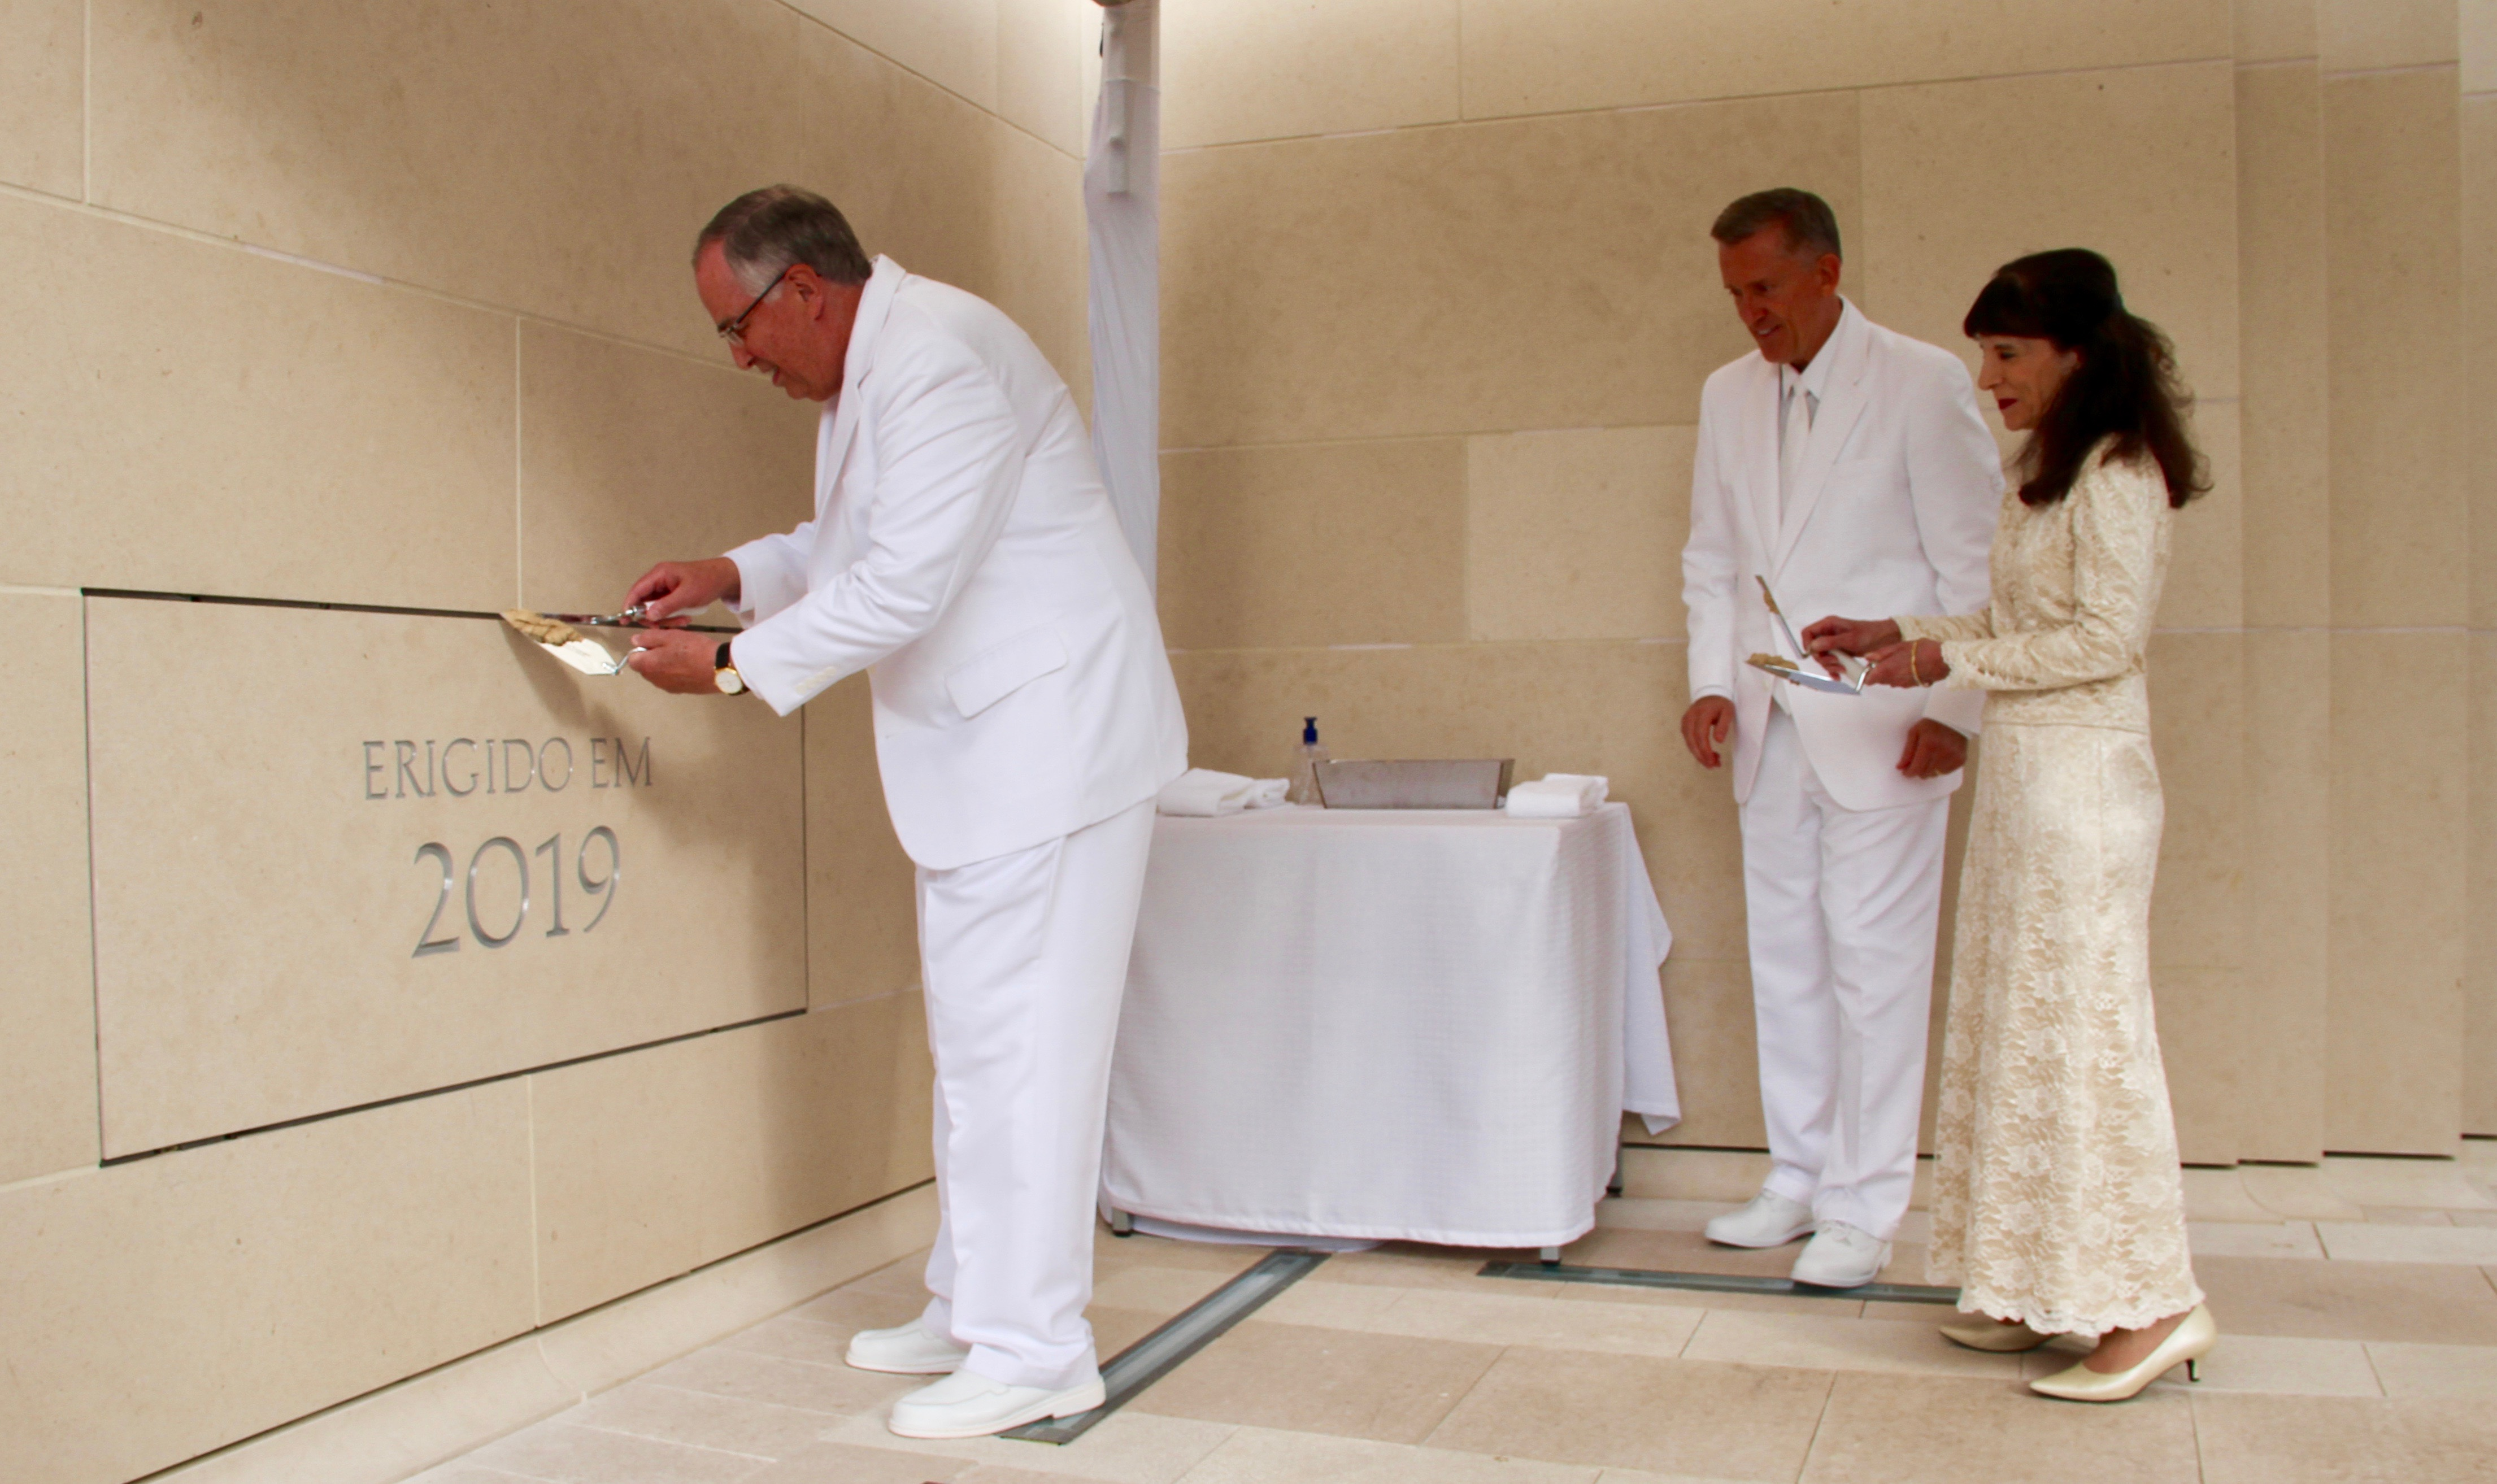 Elder Neil L. Andersen of the Quorum of the Twelve Apostles applies mortar around the cornerstone of the Lisbon Portugal Temple dedication on Sunday, Sept. 15, 2019. He is joined by his wife, Sister Kathy Andersen, right, and Elder Kevin R. Duncan, middle.